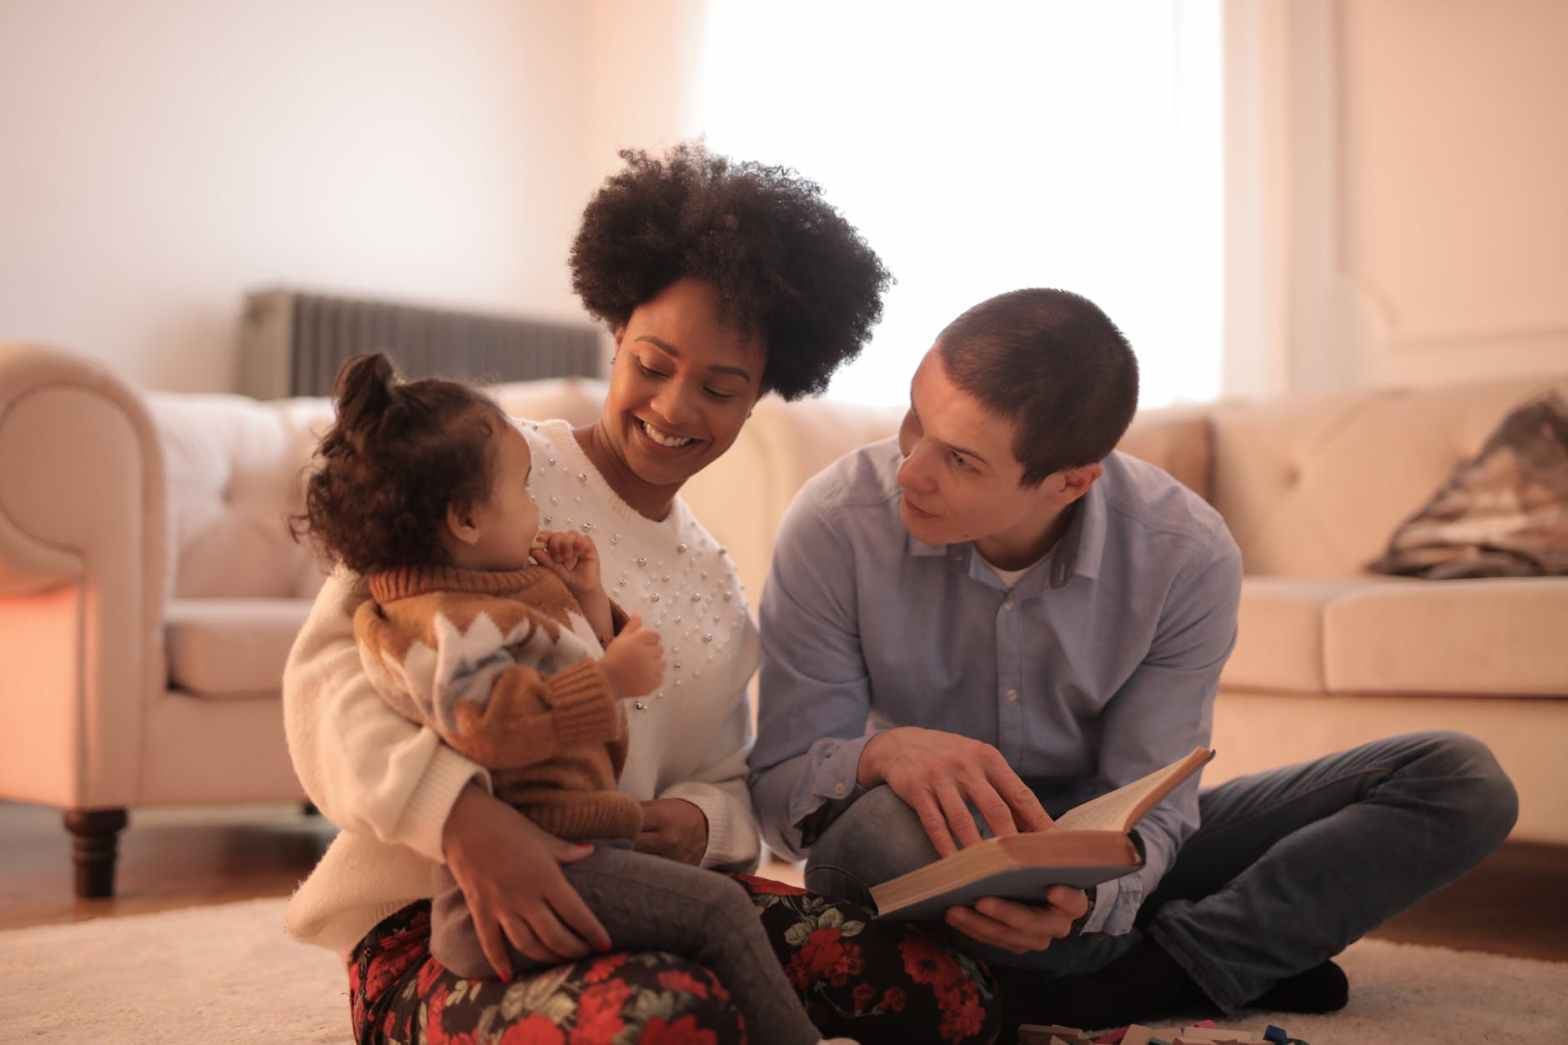 3 strategies to improve your parenting style: Communication